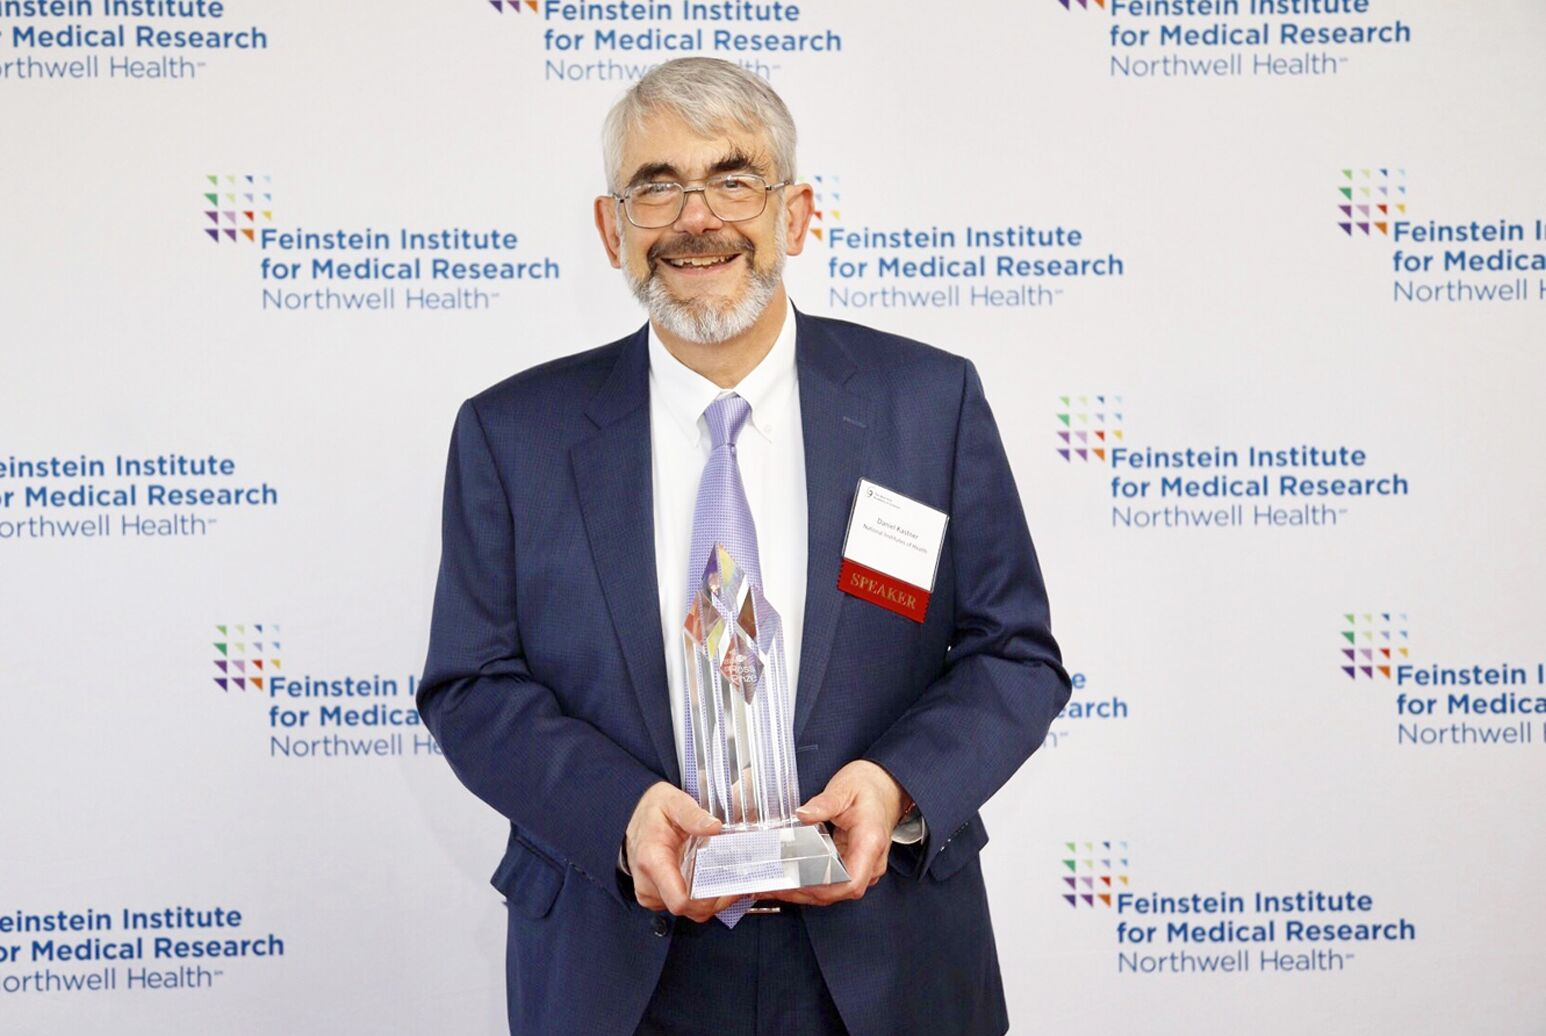 Daniel Kastner, MD, PhD, the National Institutes of Health's (NIH) National Human Genome Research Institute scientific director, following the presentation of the Ross Prize in Molecular Medicine.